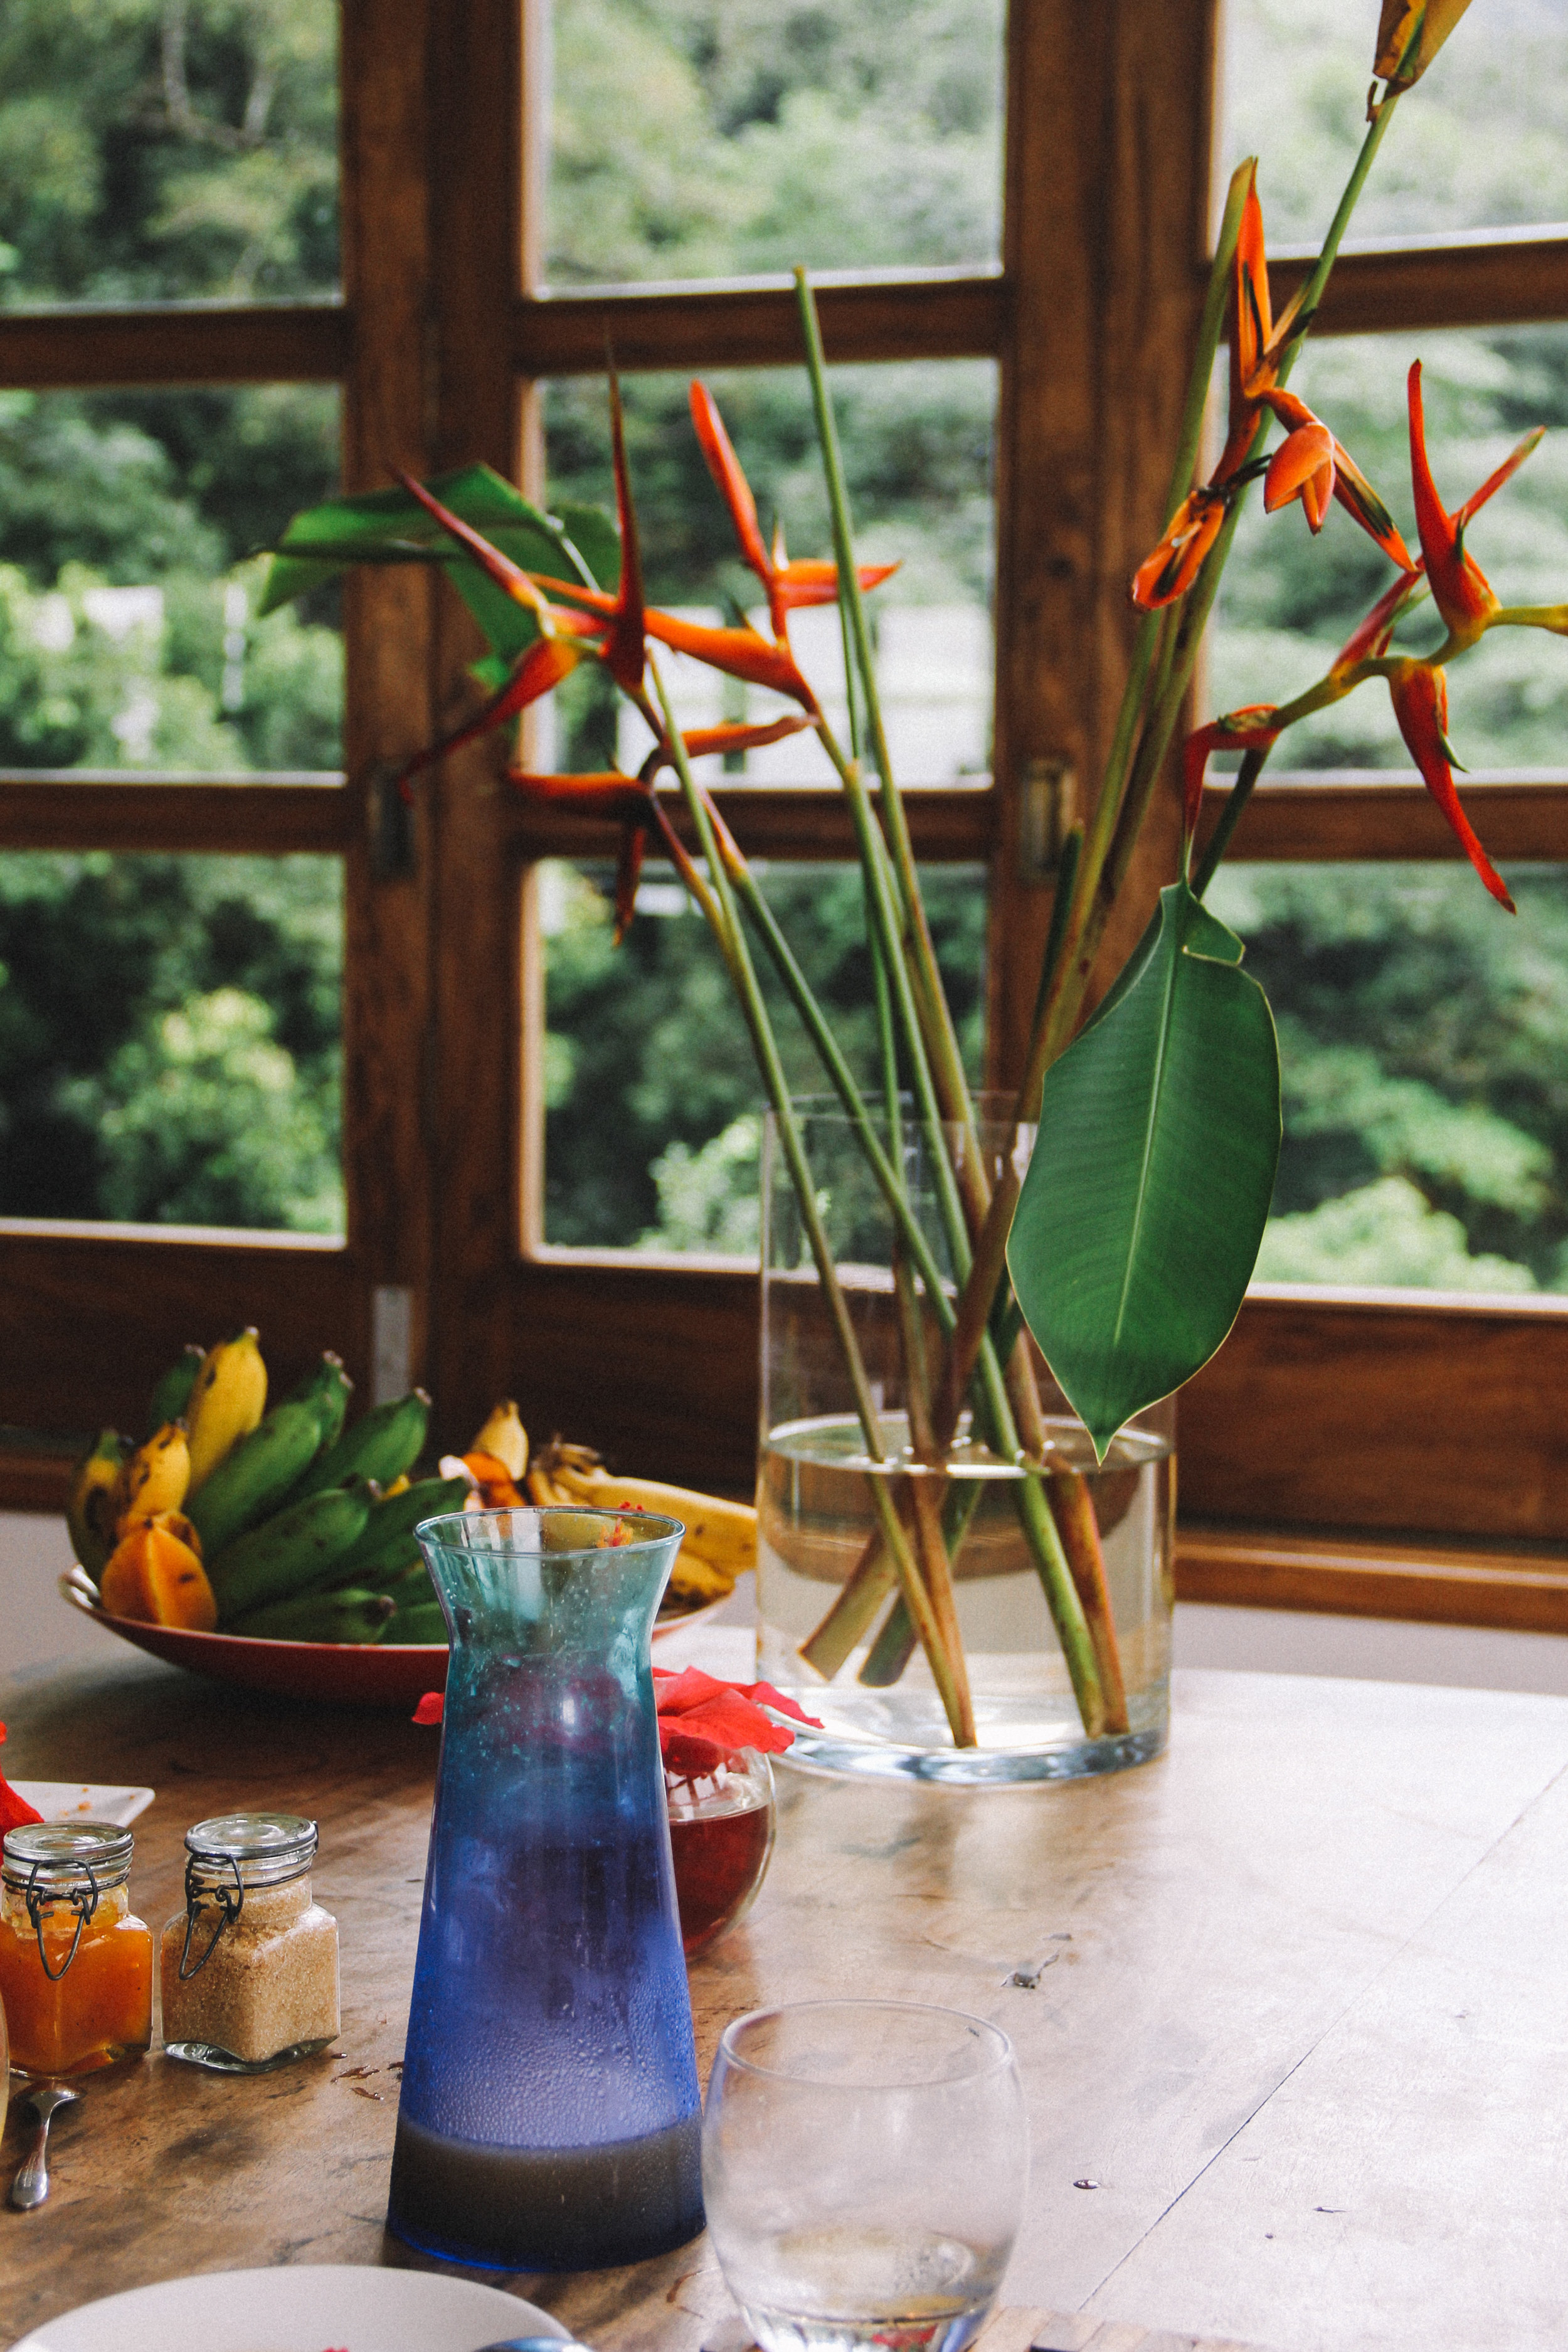 The breakfast table at Copolia Lodge, Mahe, Seychelles